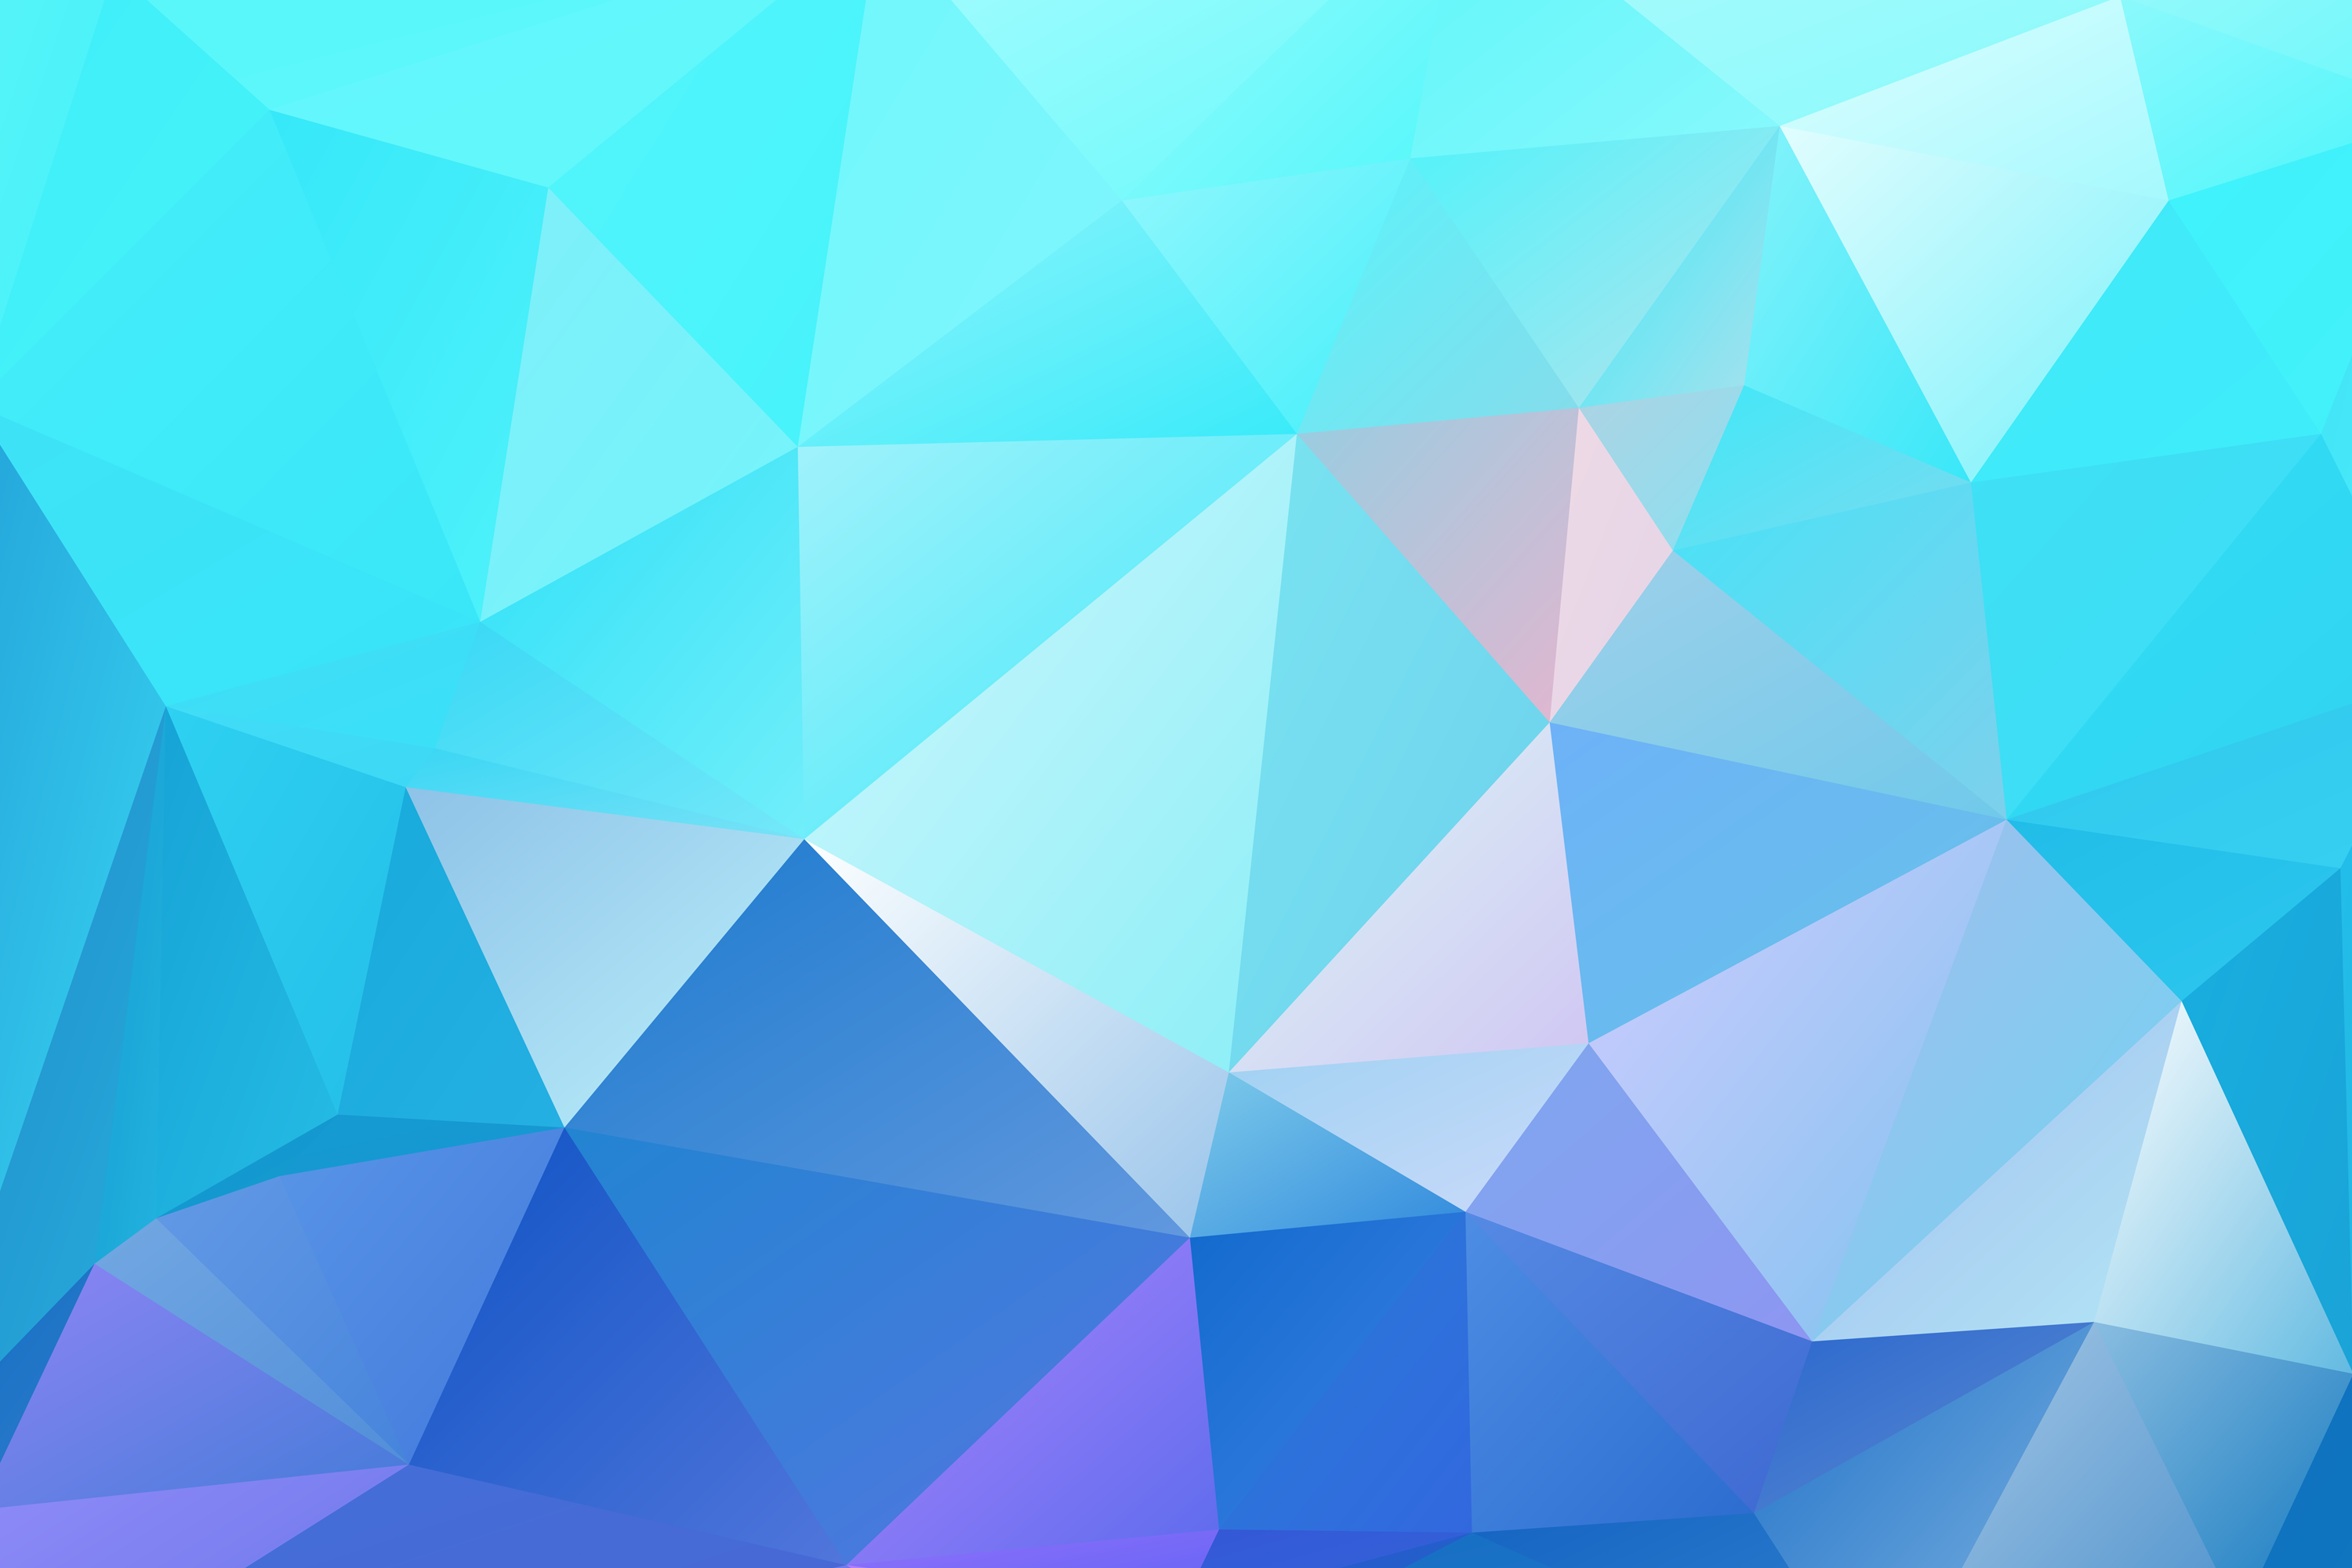 multicolor polygon wallpapers for iphone ipad or desktop